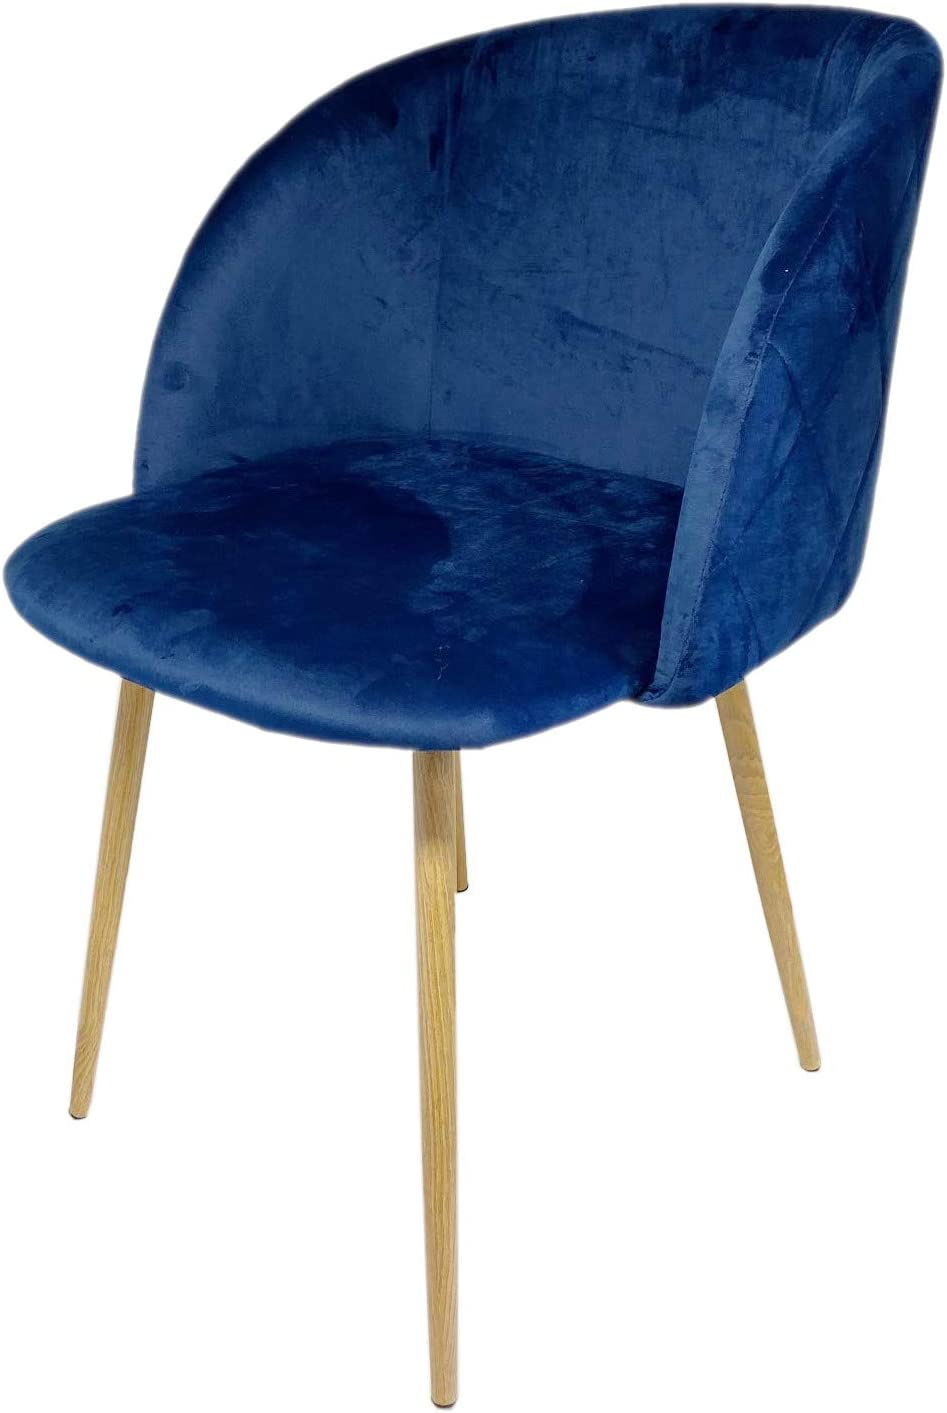 Snug Velvet Dining Chairs w Fabric Seat and Back Kitchen, Dning, Lounge Chairs with Wooden Style Sturdy Metal Legs, Set of 2, Blue Blue